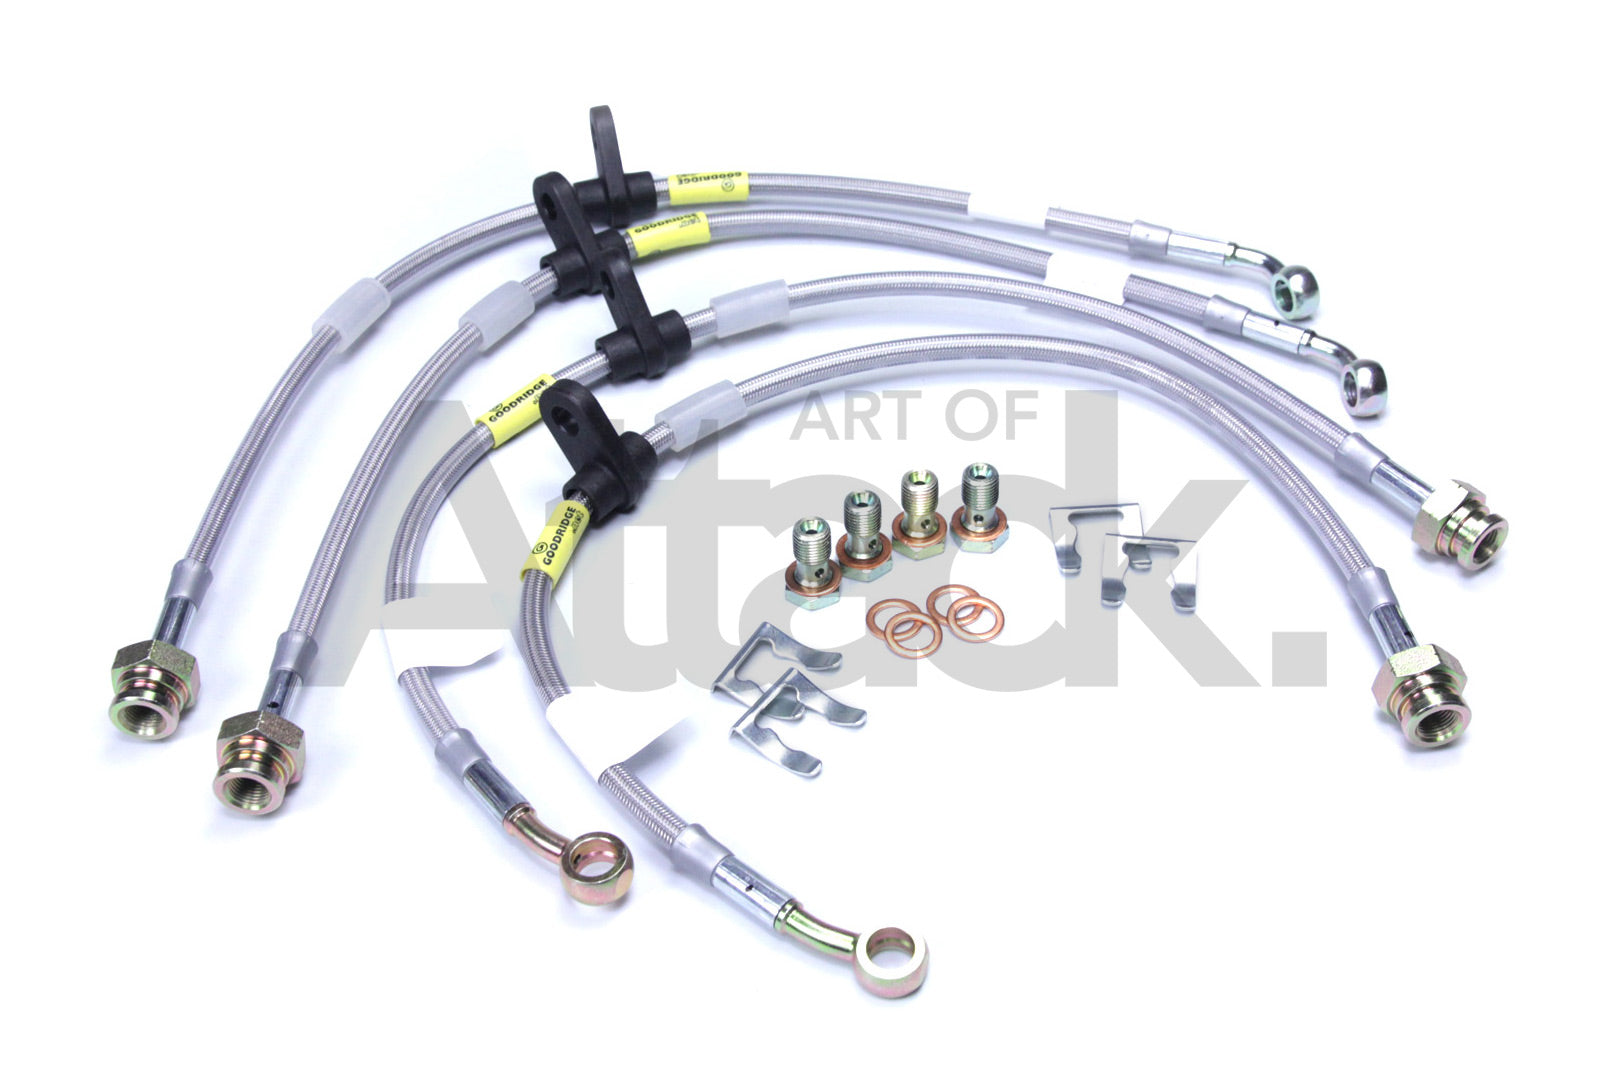 REAR BRAKE LINES FOR 02-05 HONDA CIVIC Si EP3 STOPTECH STAINLESS BRAIDED FRONT